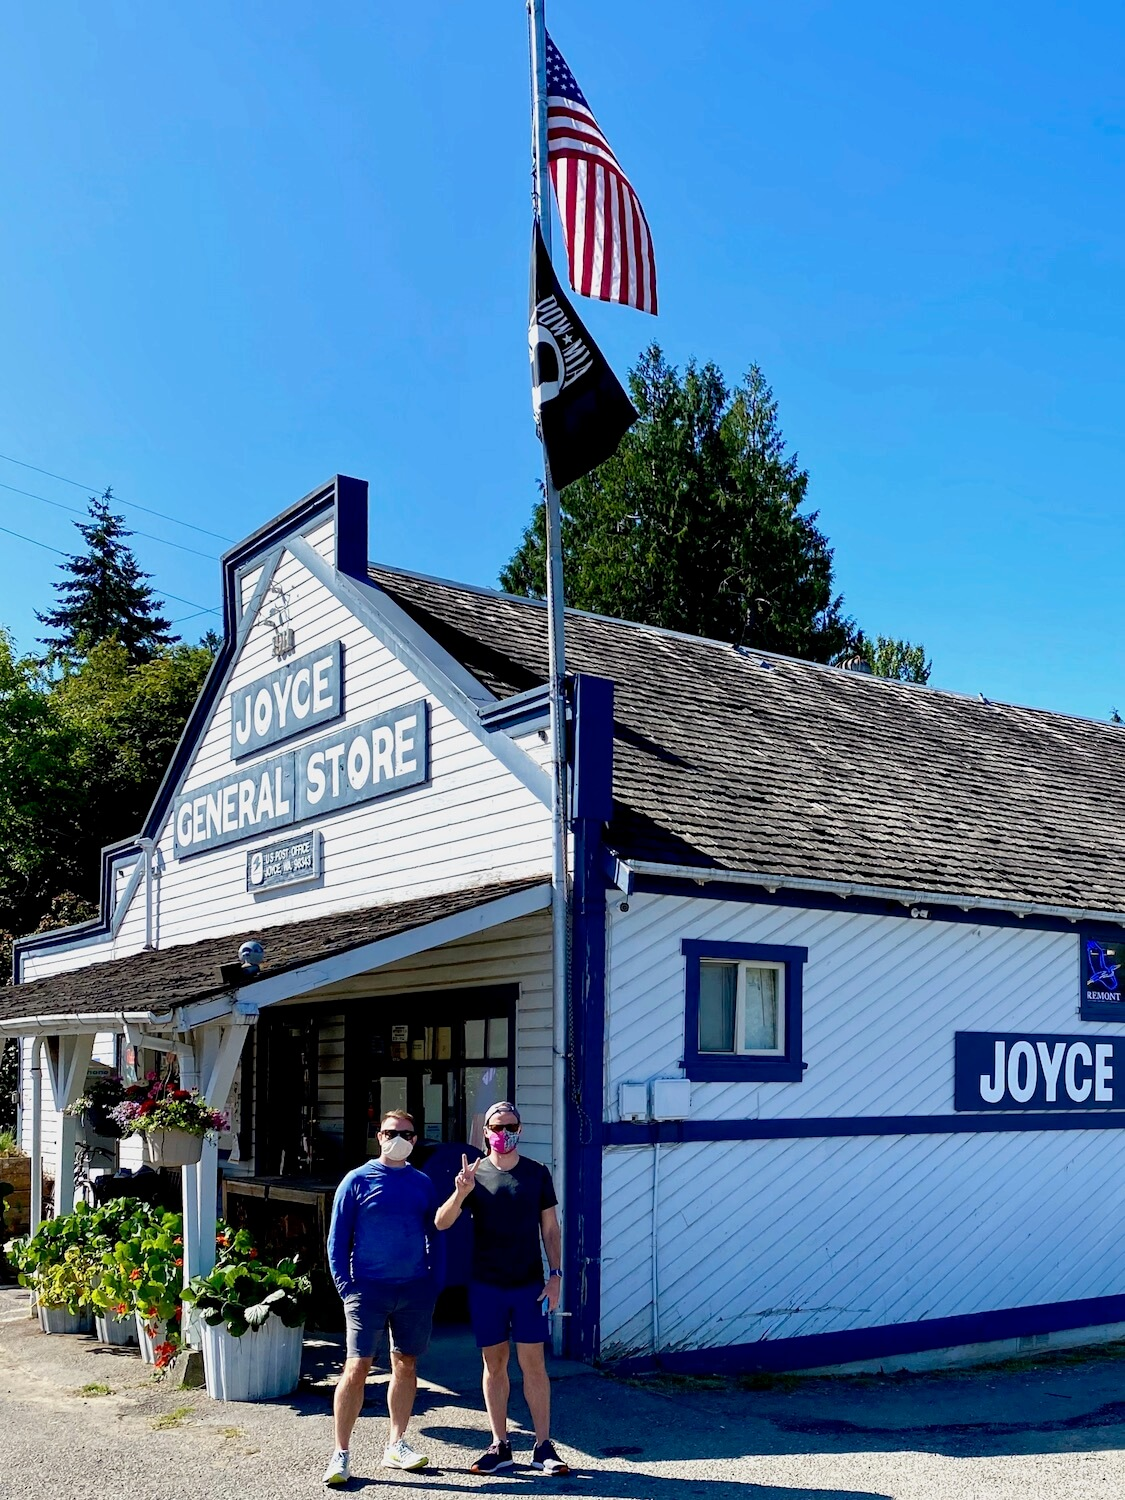 The Joyce General Store is a rustic, timeless small town meeting place. The pioneer style building is gray wood panels with bright blue trim and two men stand out from wearing face masks as a flagpole stands tall with an American flag and a black POW flag. The sky is blue and a green leaved maple tree rises up behind the age old store.